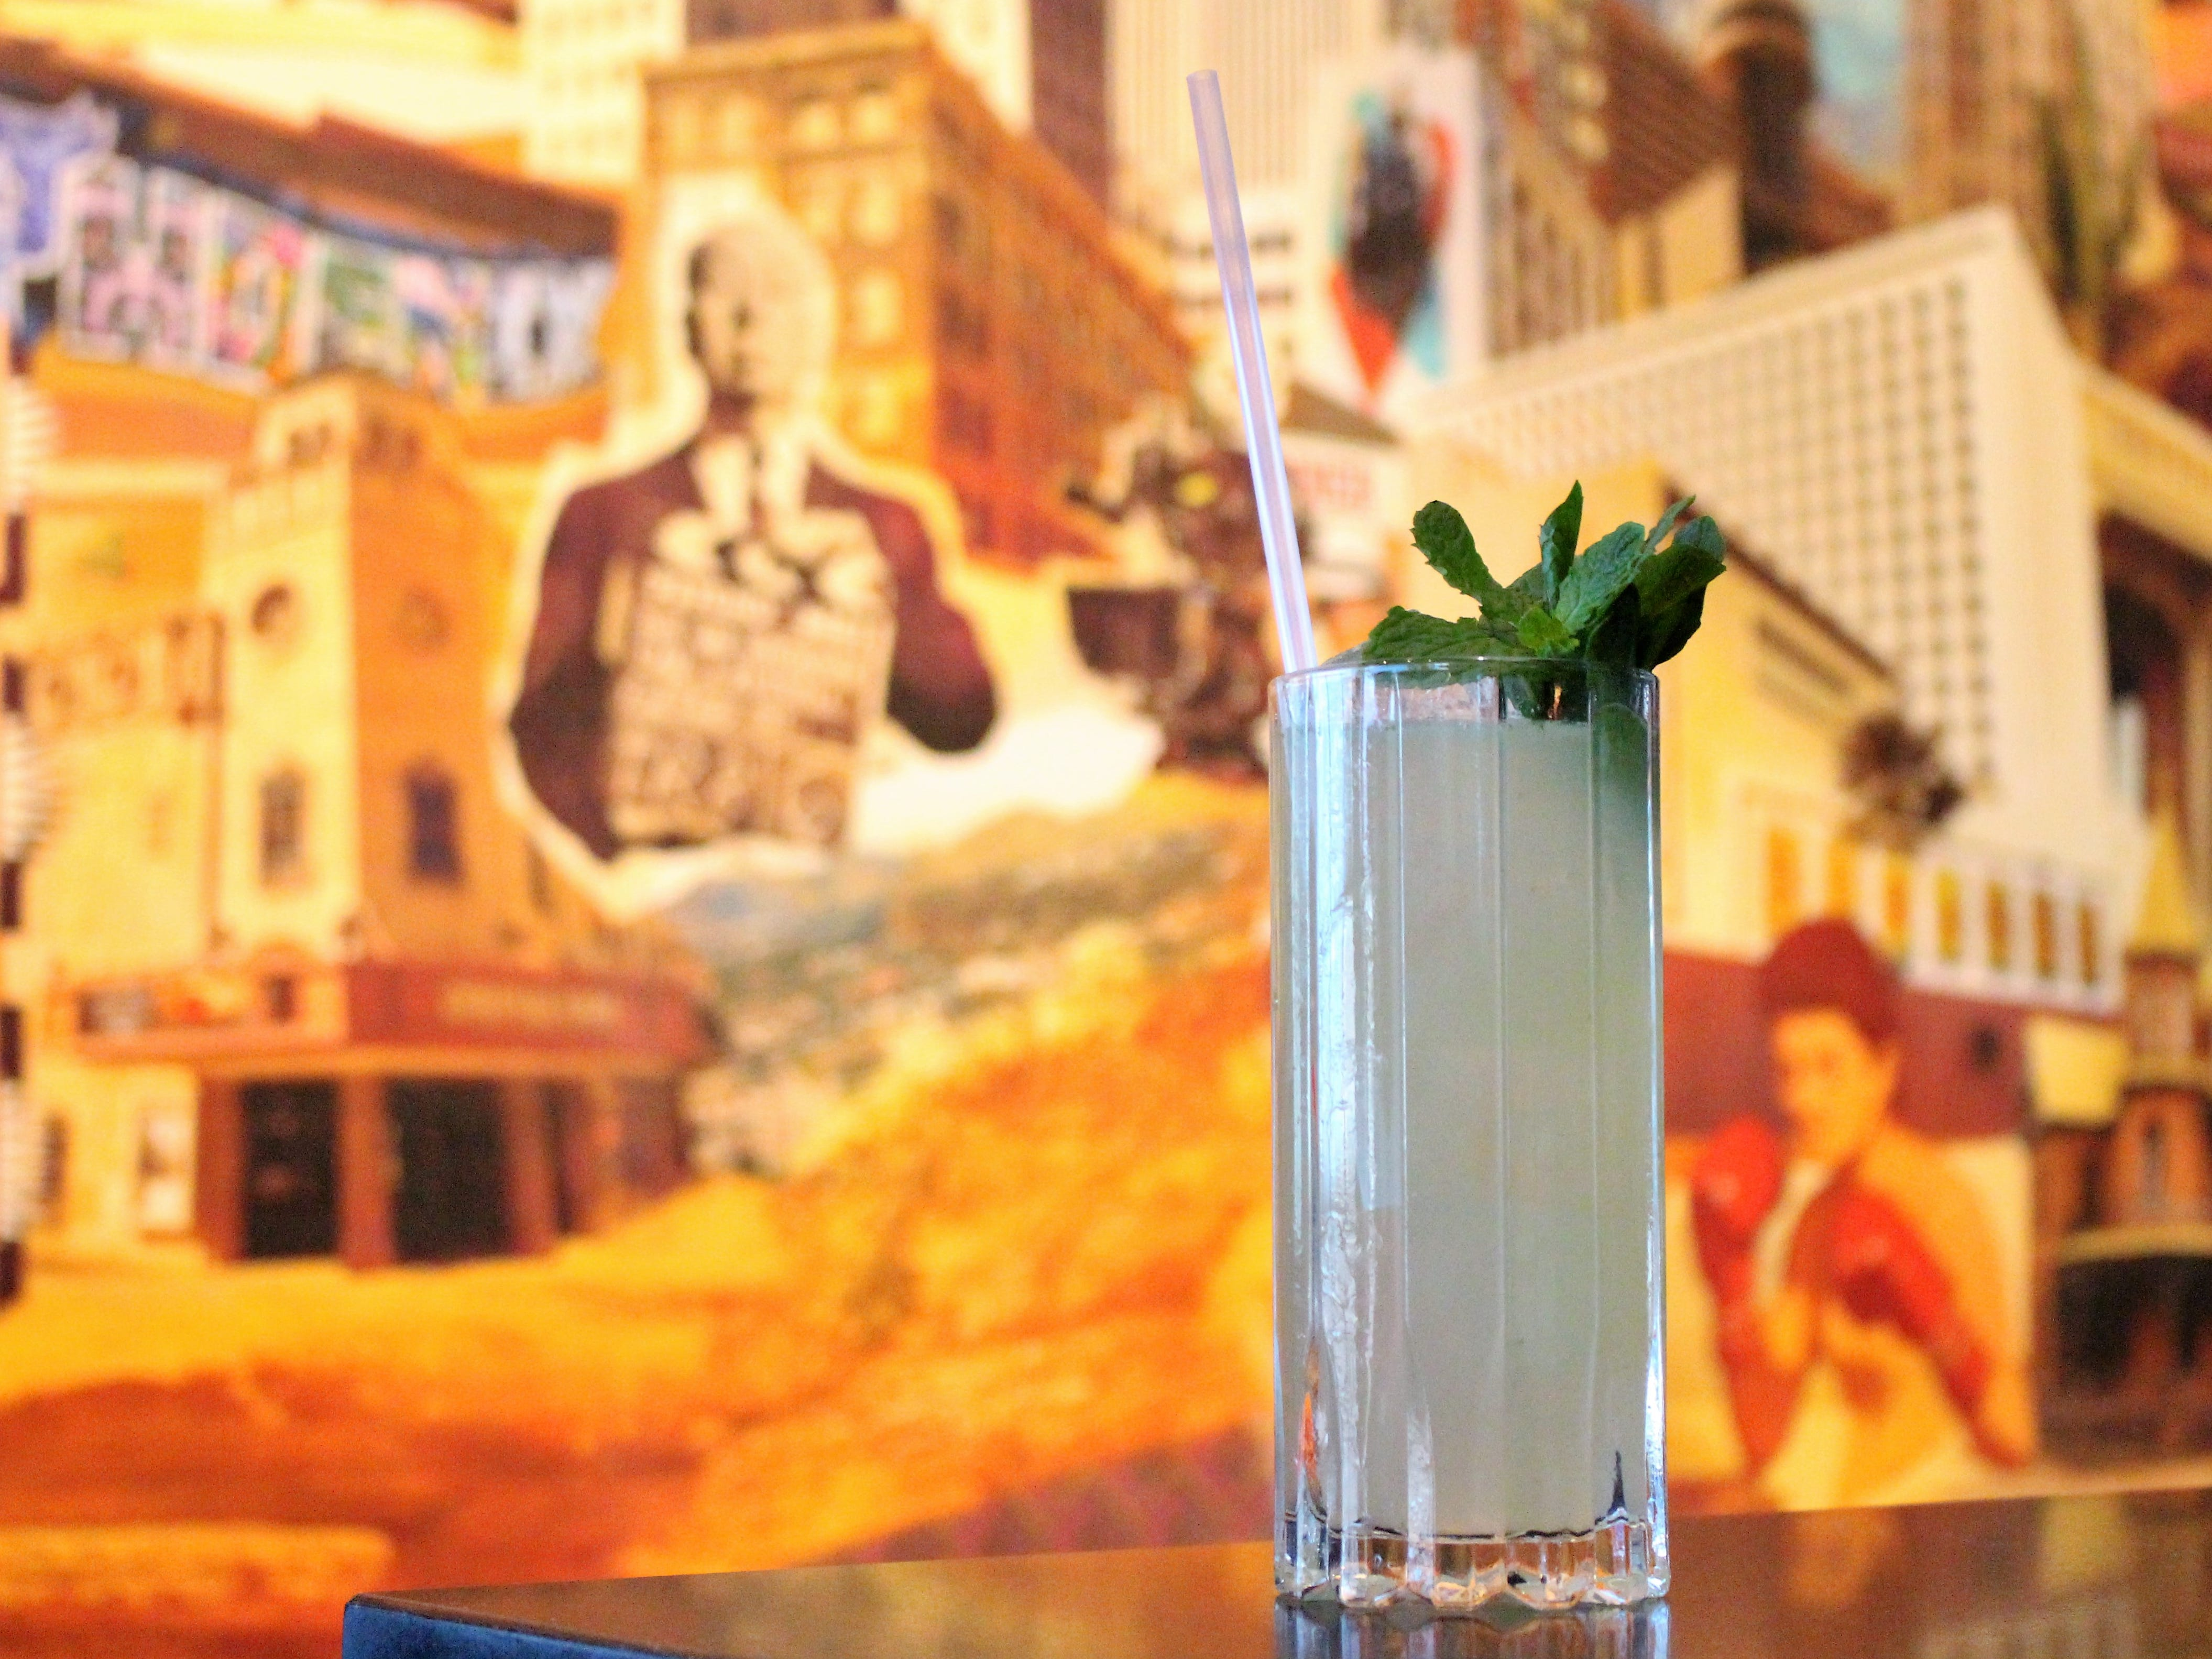 From the Cooling Rituals section of the Little Rituals menu, the Touch of Evil is a refreshing combination of pisco and absinthe that's lengthened with soda.